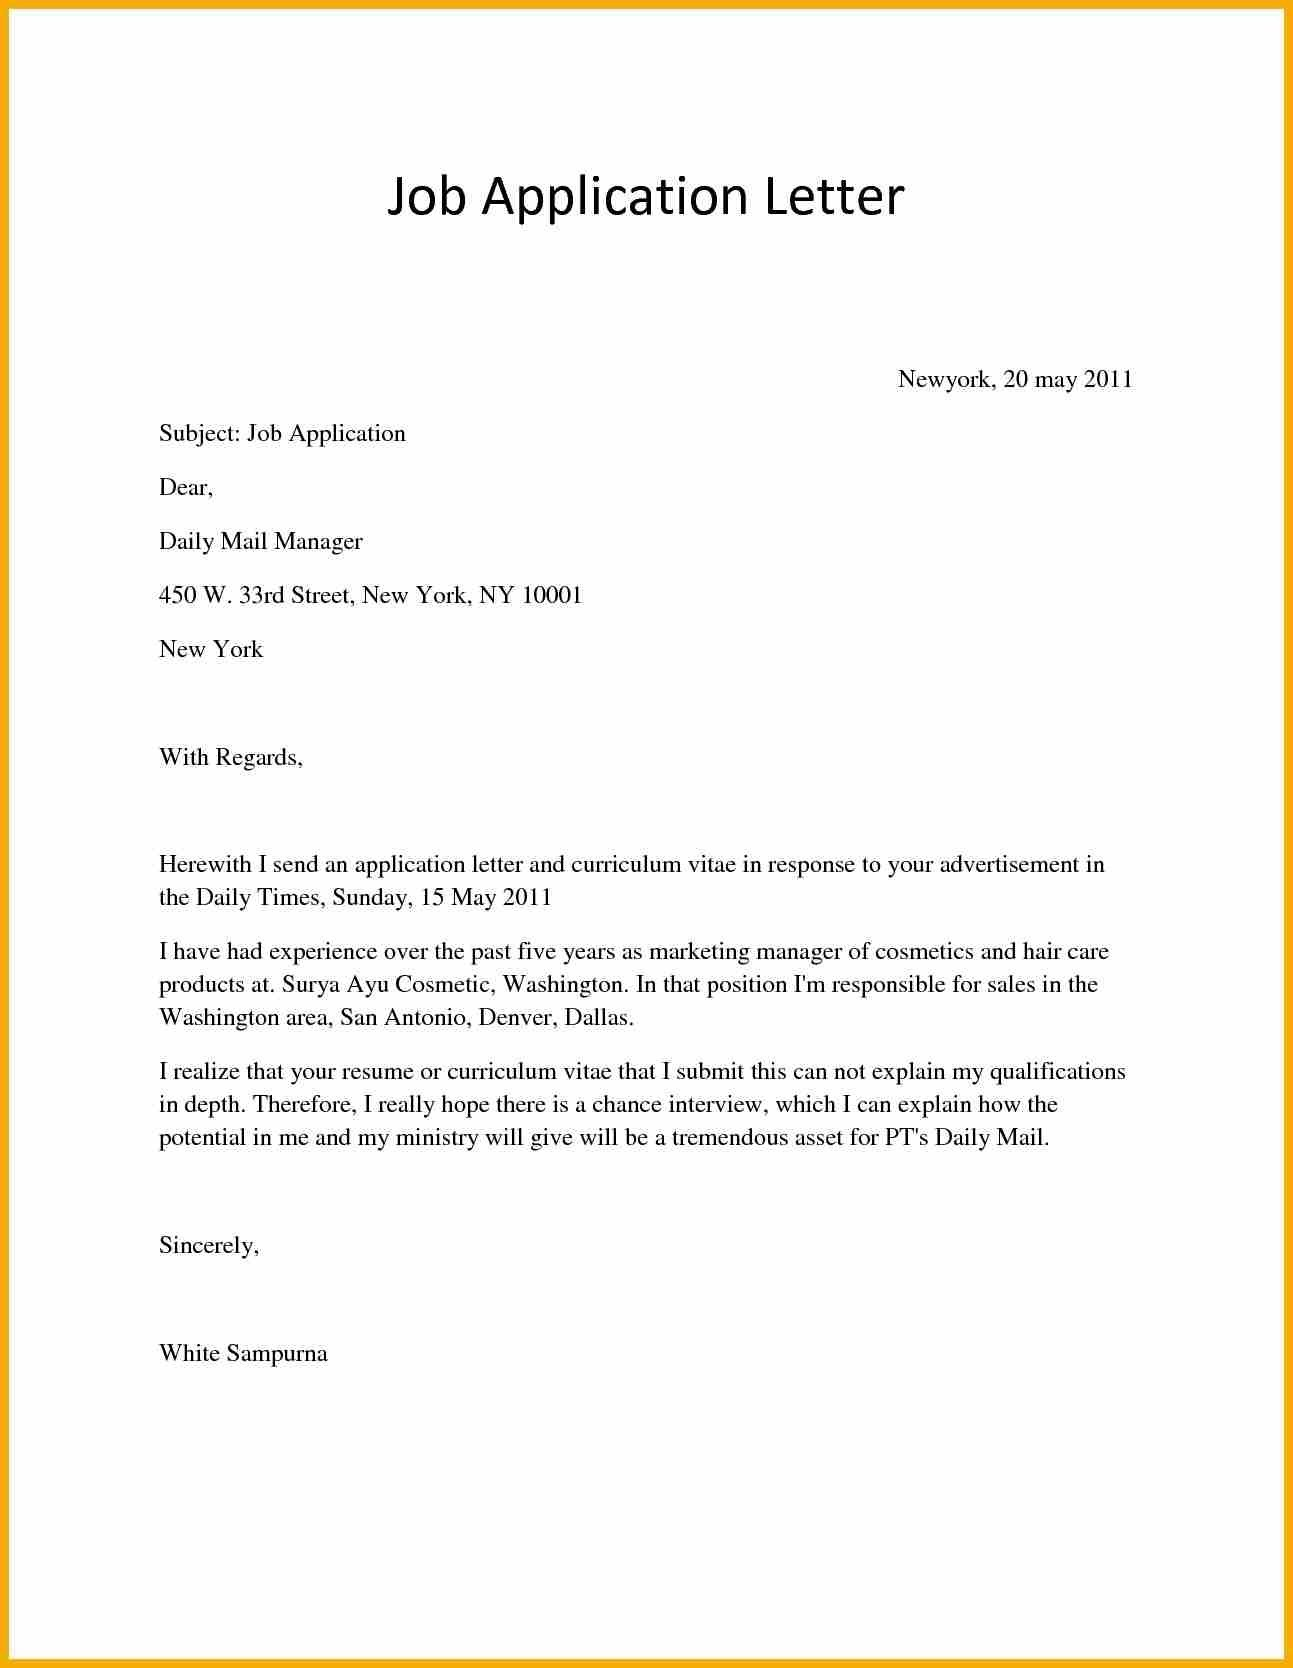 Covering Letter For Job Vacancy